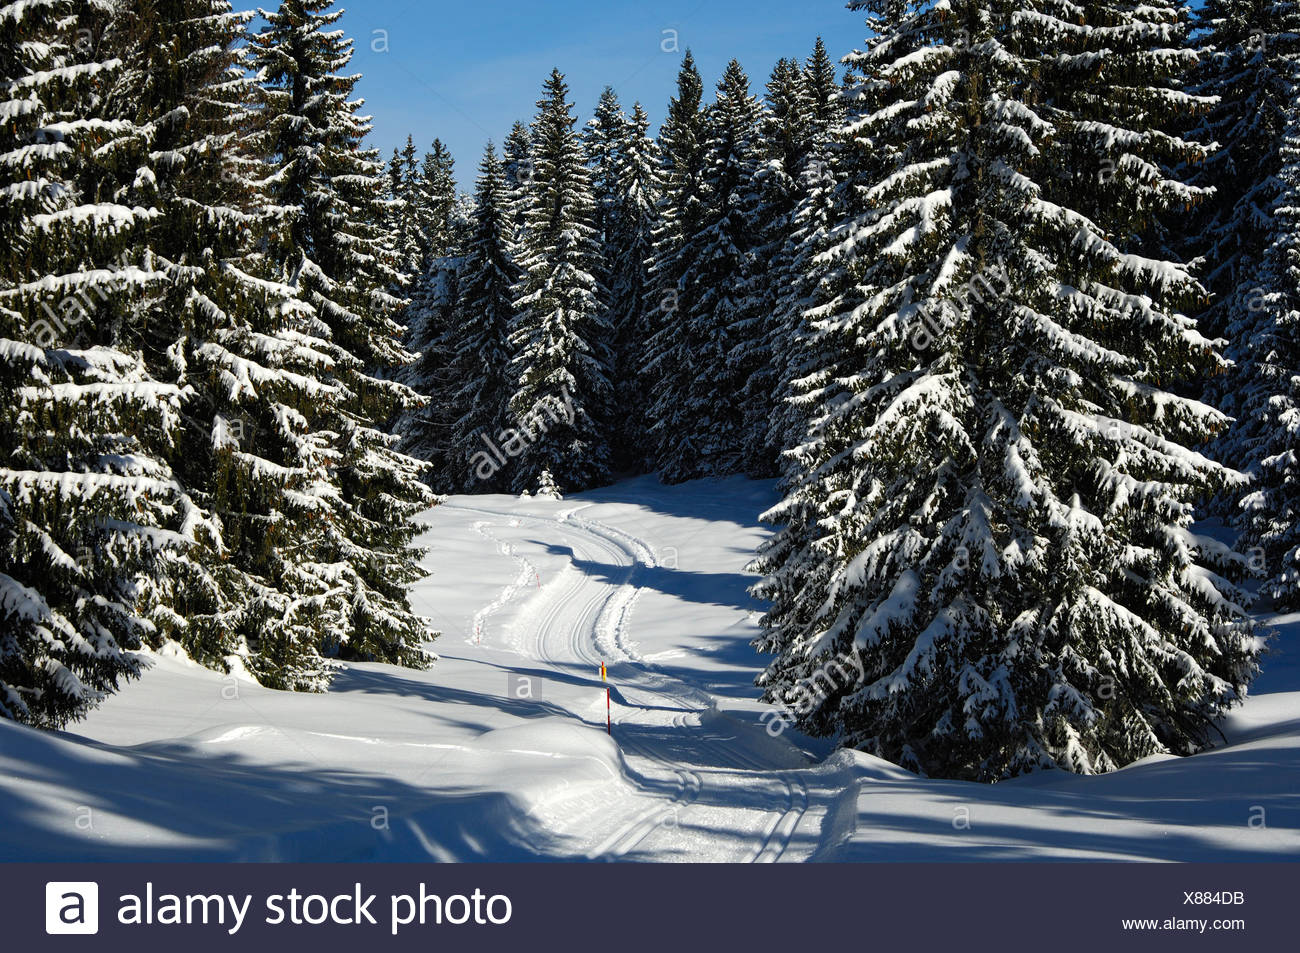 A deserted groomed cross-country ski trail passing through a snowy pine forest in the Jura Mountains, St. Cergue, Switzerland - Stock Image